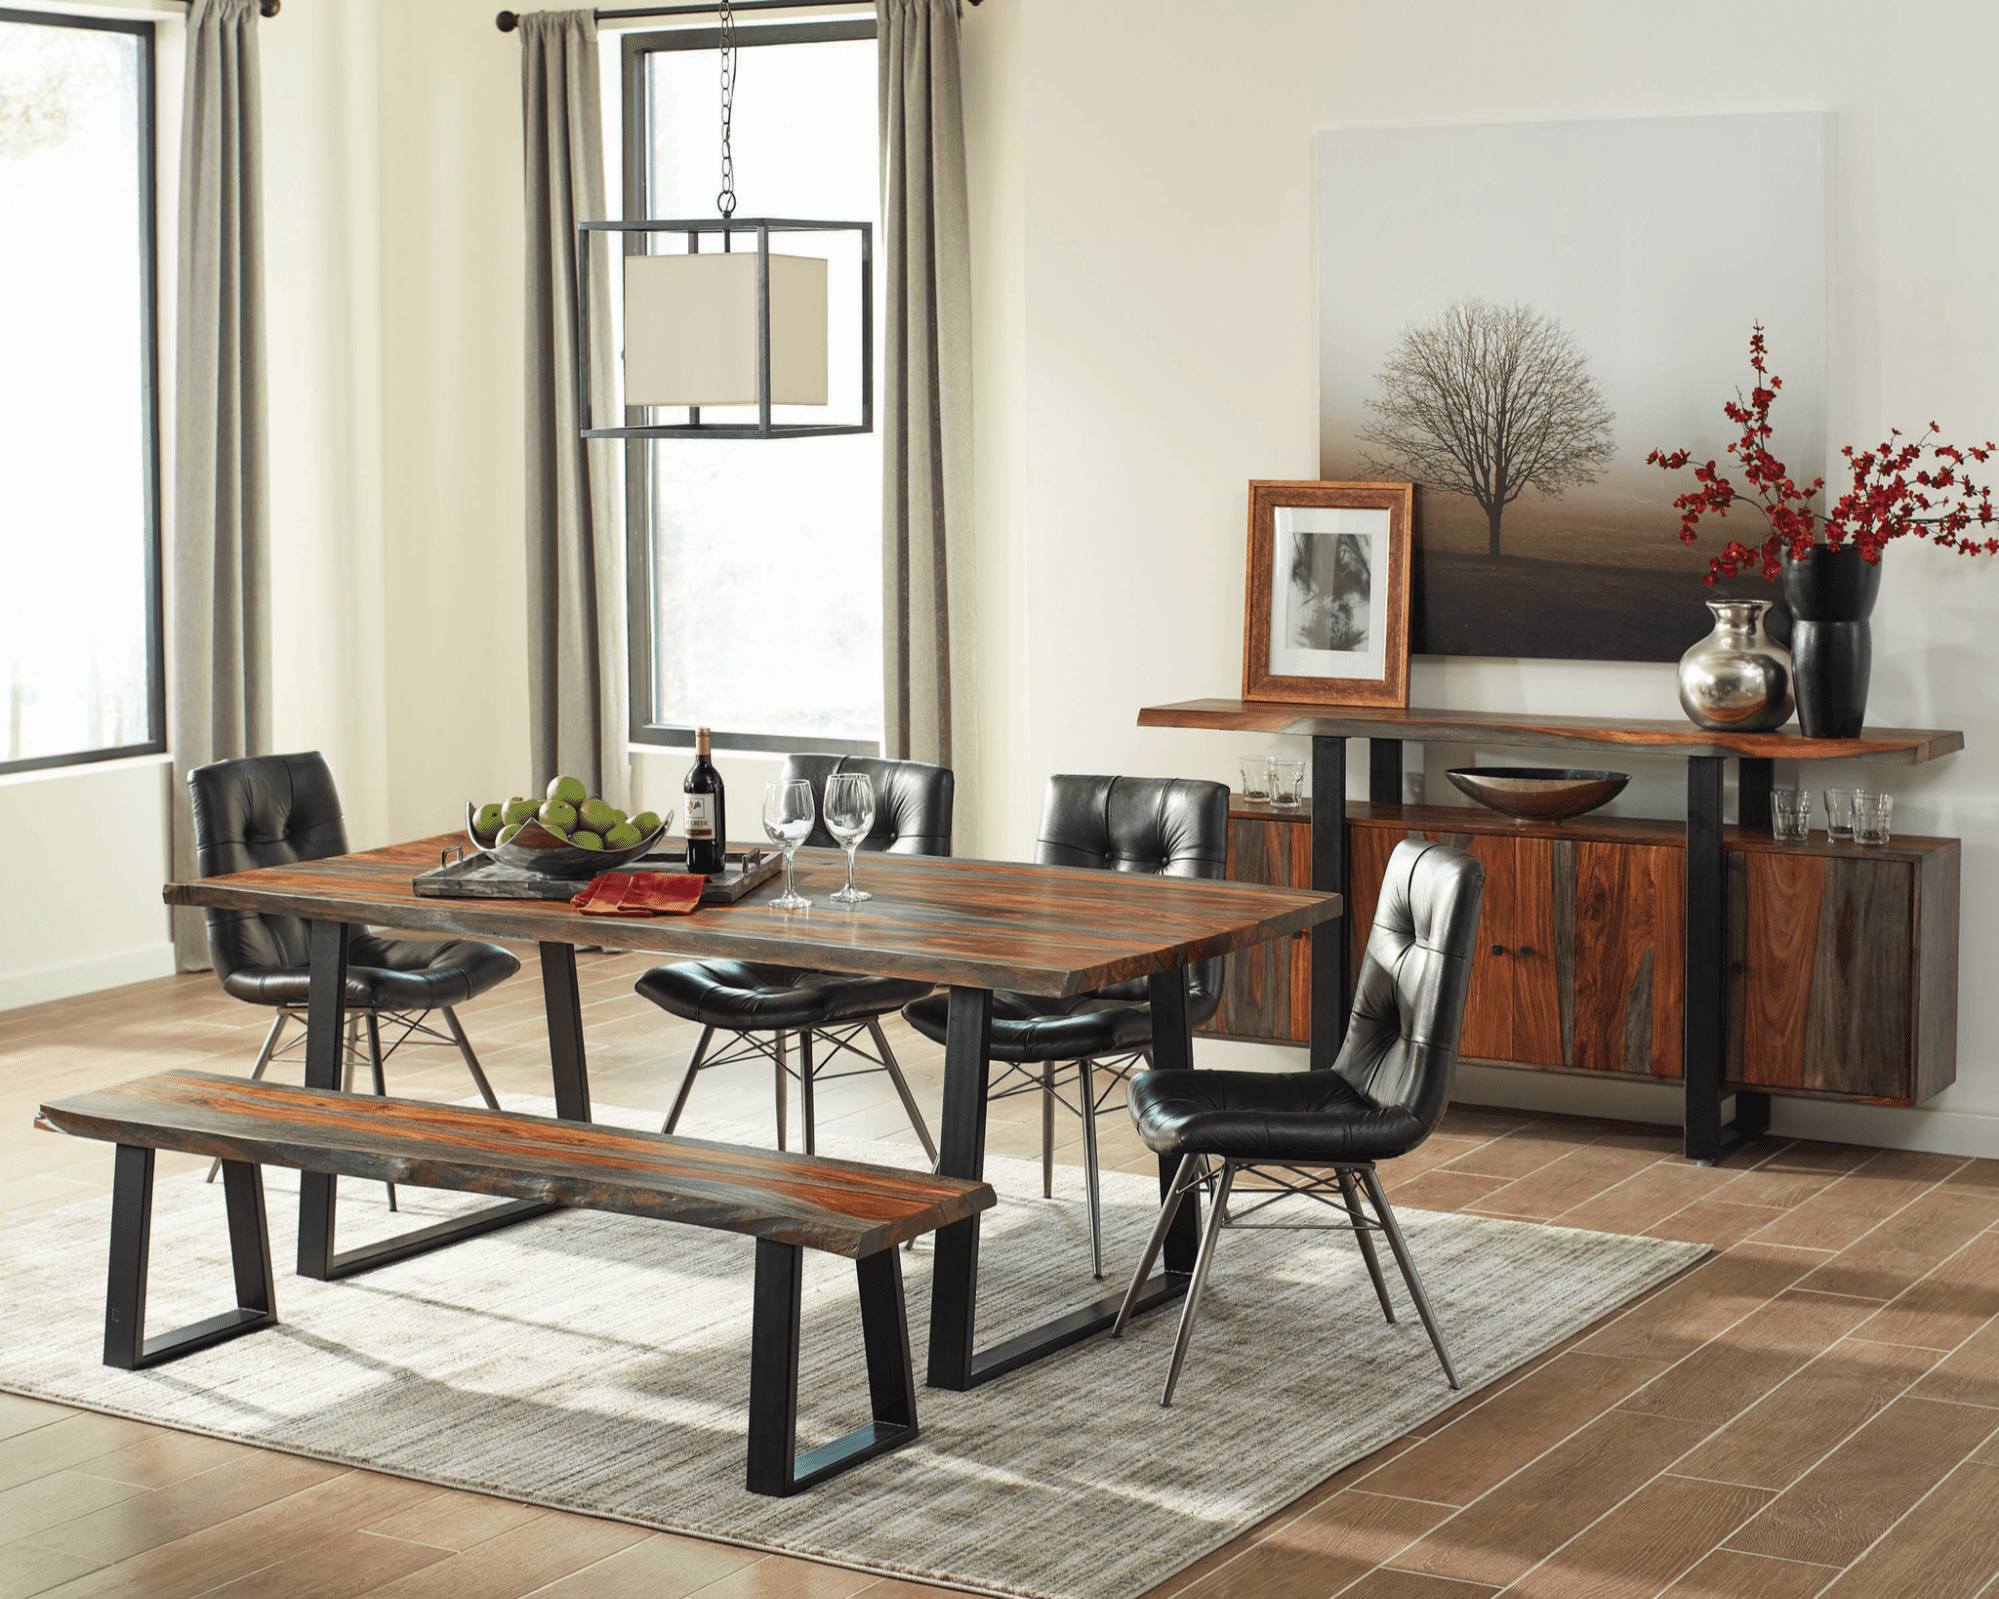 Modern dining tables: The best design elements and styles